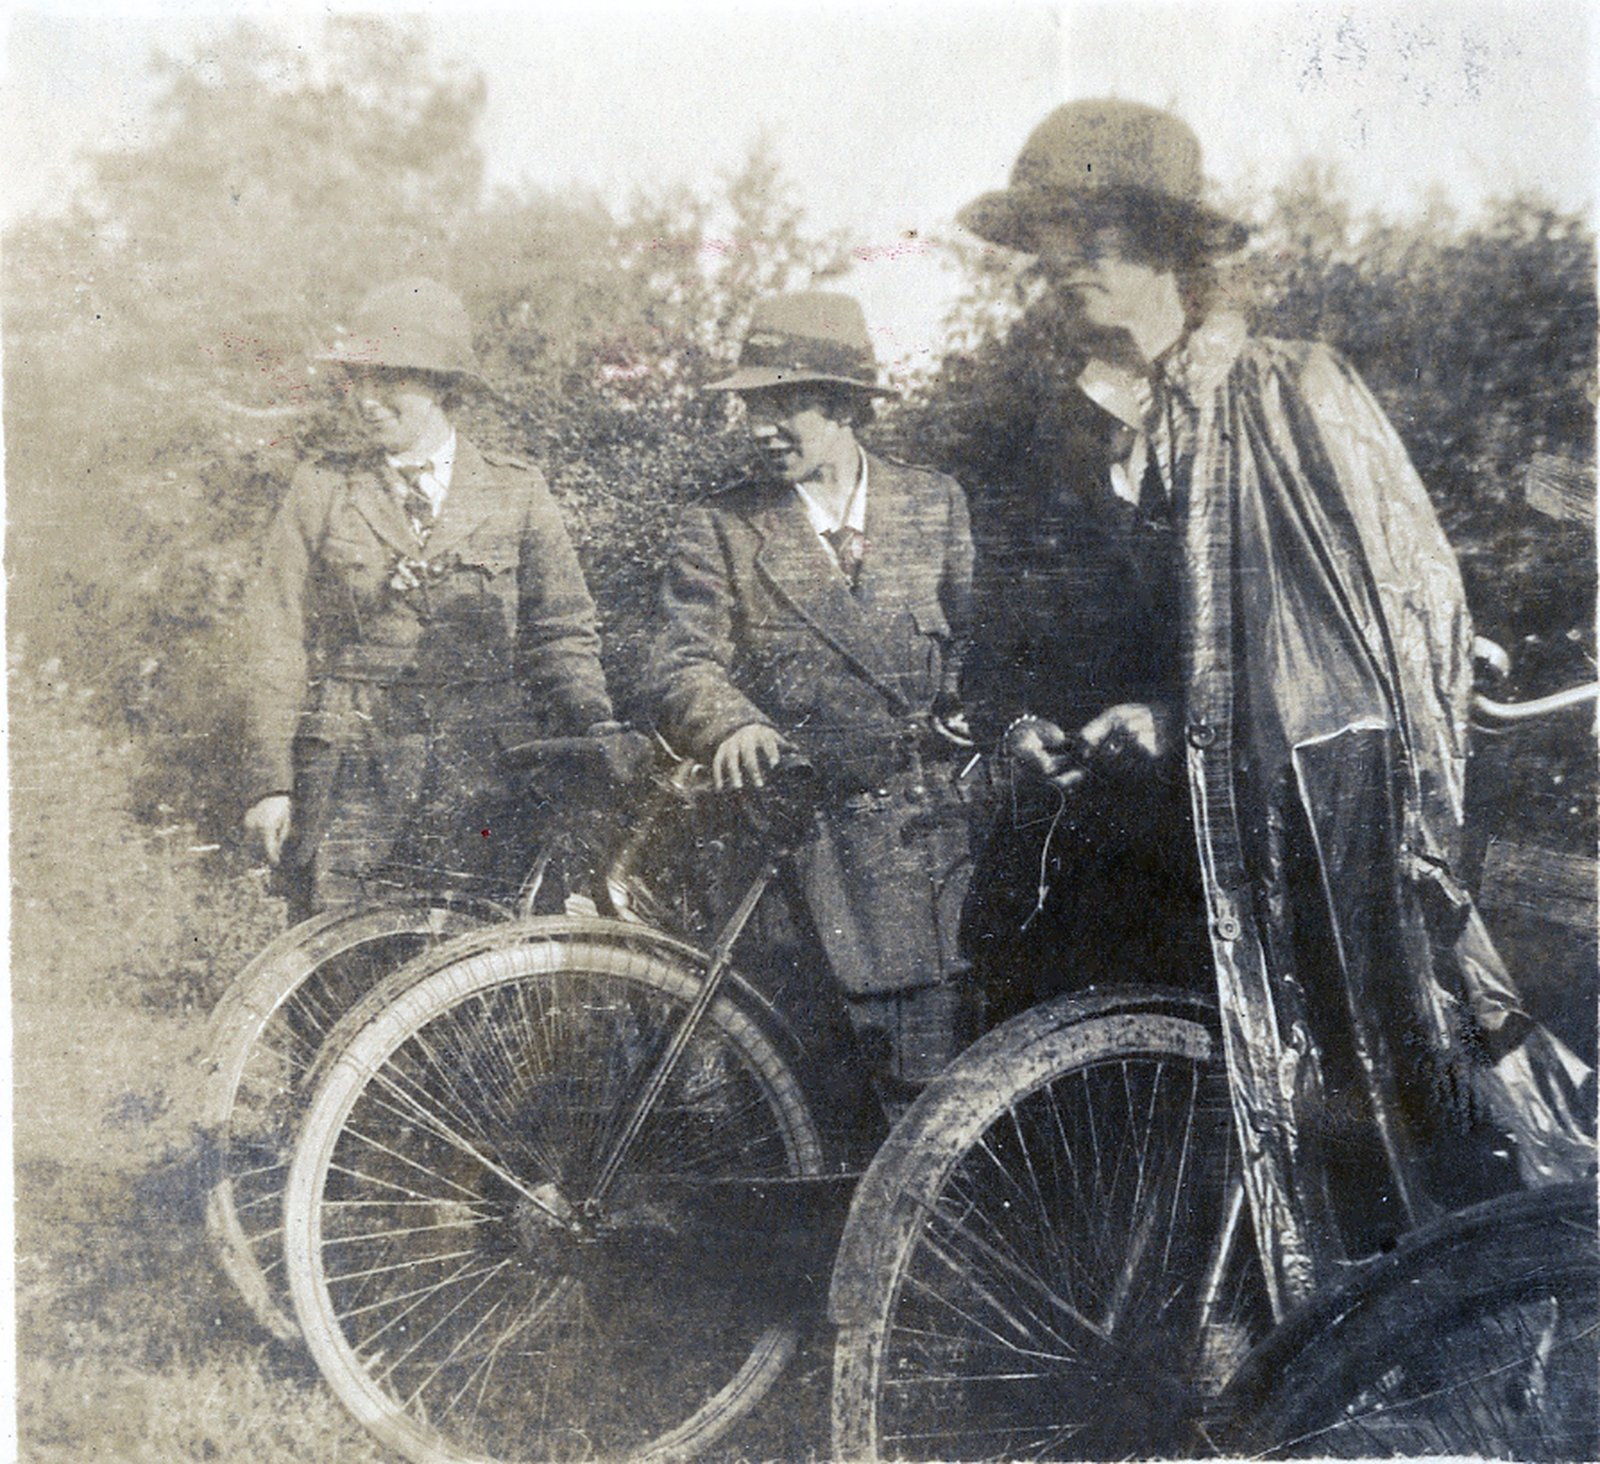 Image - Cumann na mBan Cyclist Corps en route to Bodenstown. Photo: © Military Archives